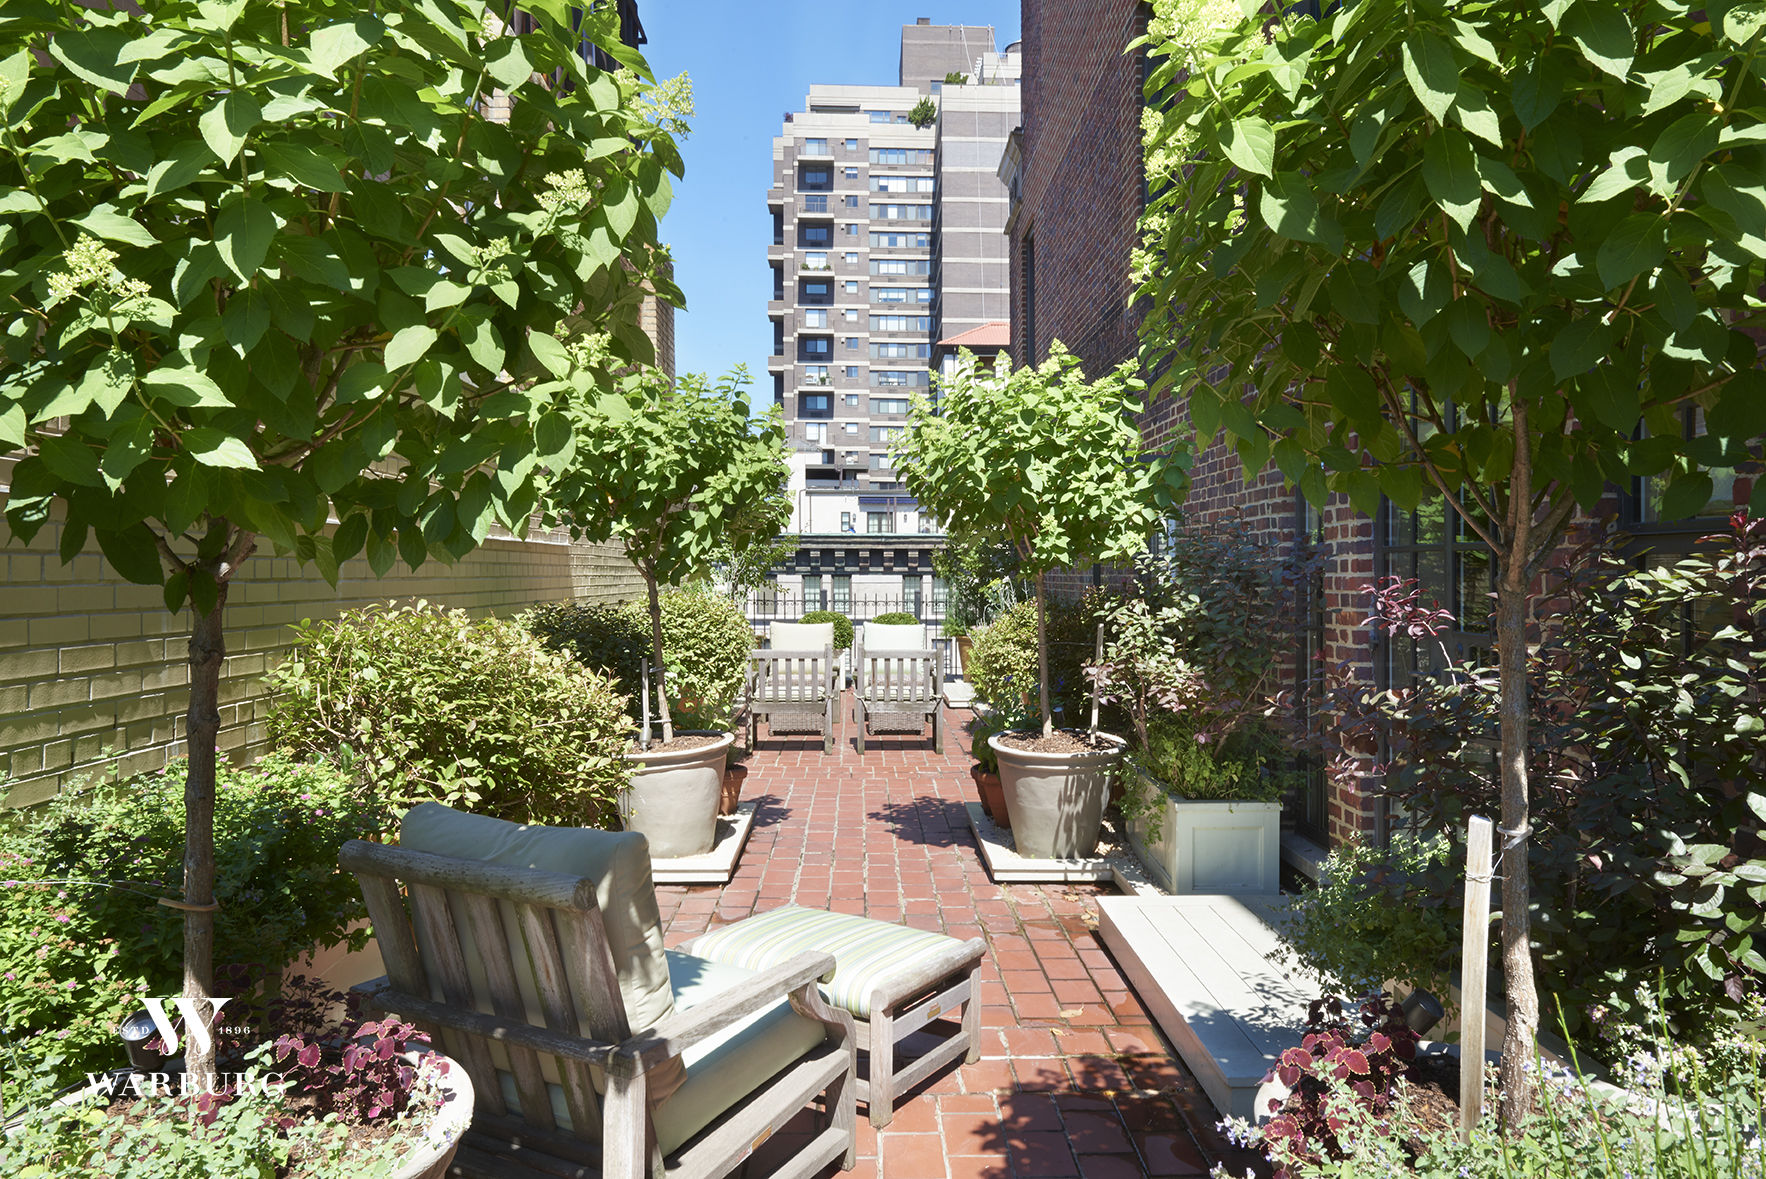 1095 Park Avenue, Apt 16D Photo 2 - WR-456442